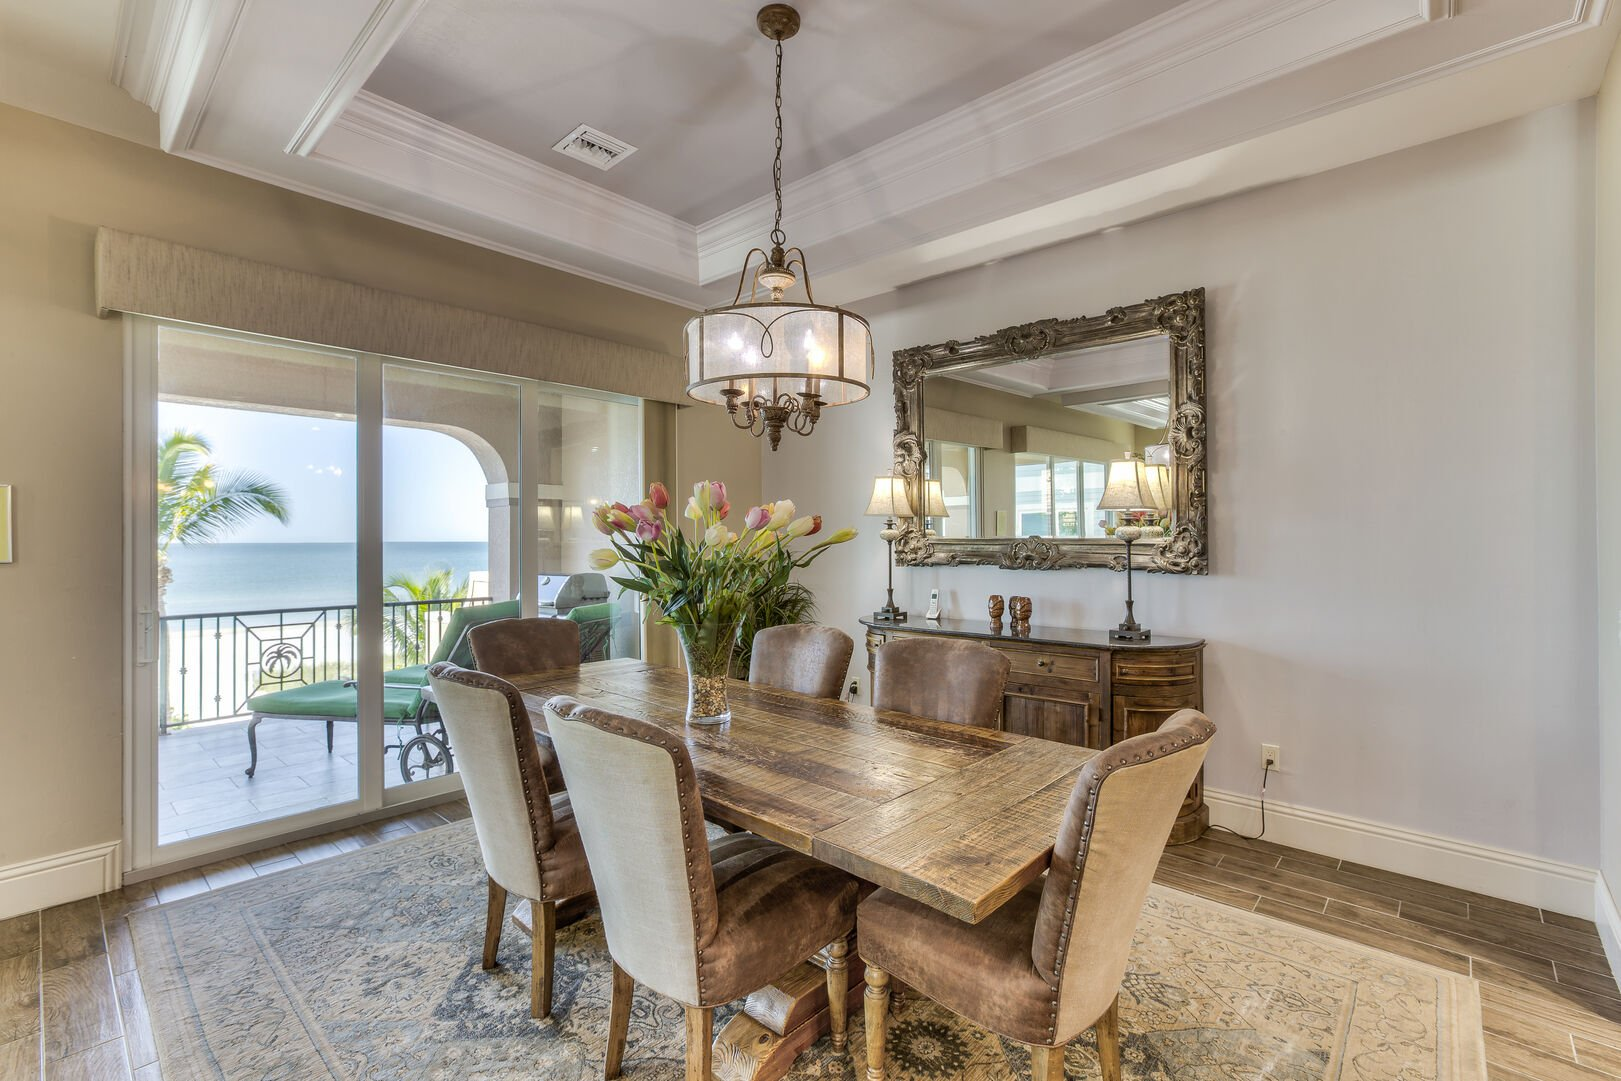 Dining room with dining table seating for six in our Fort Myers vacation home rental